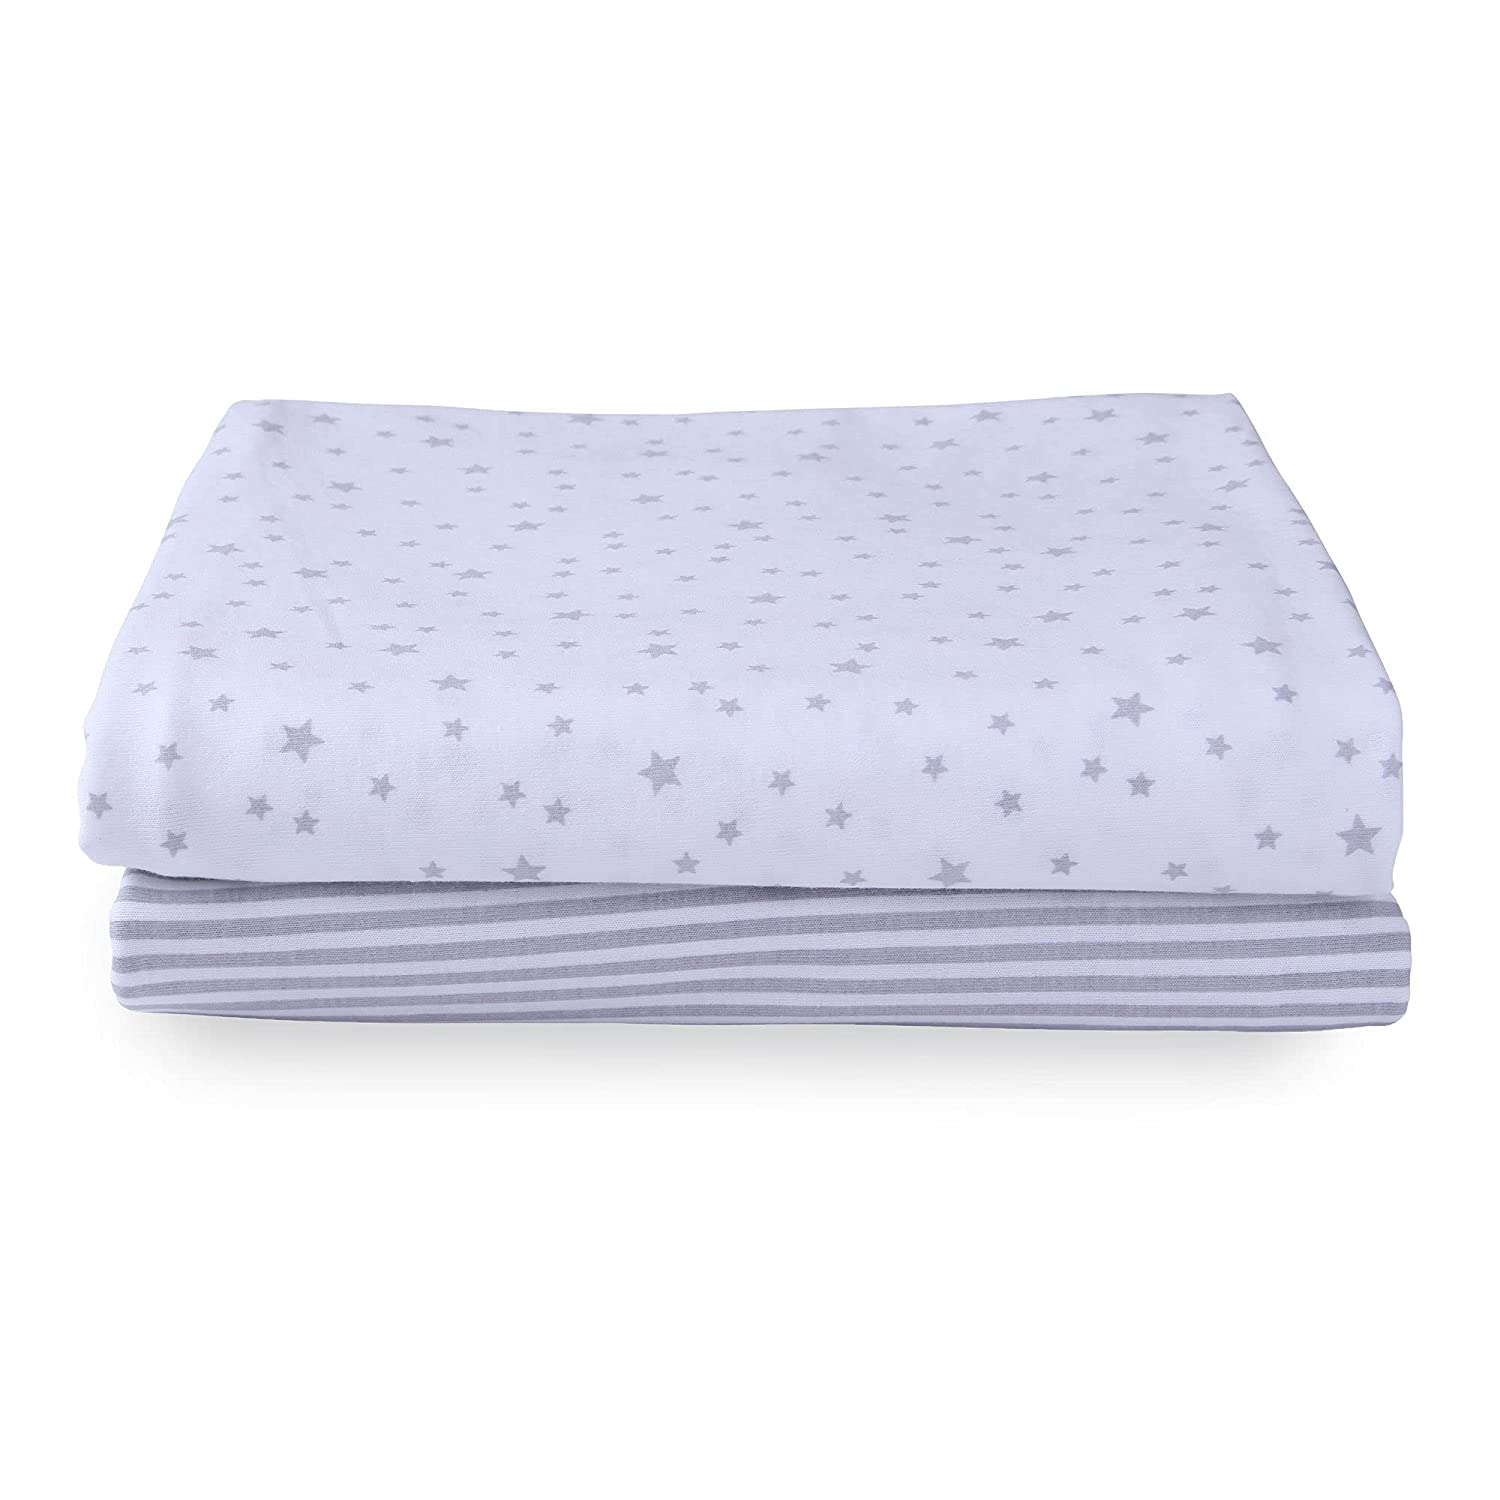 Clair Seasonal Wrap Introduction Don't miss the campaign de Lune Cotton Jersey Moses Sheets Interlock Basket Fitted